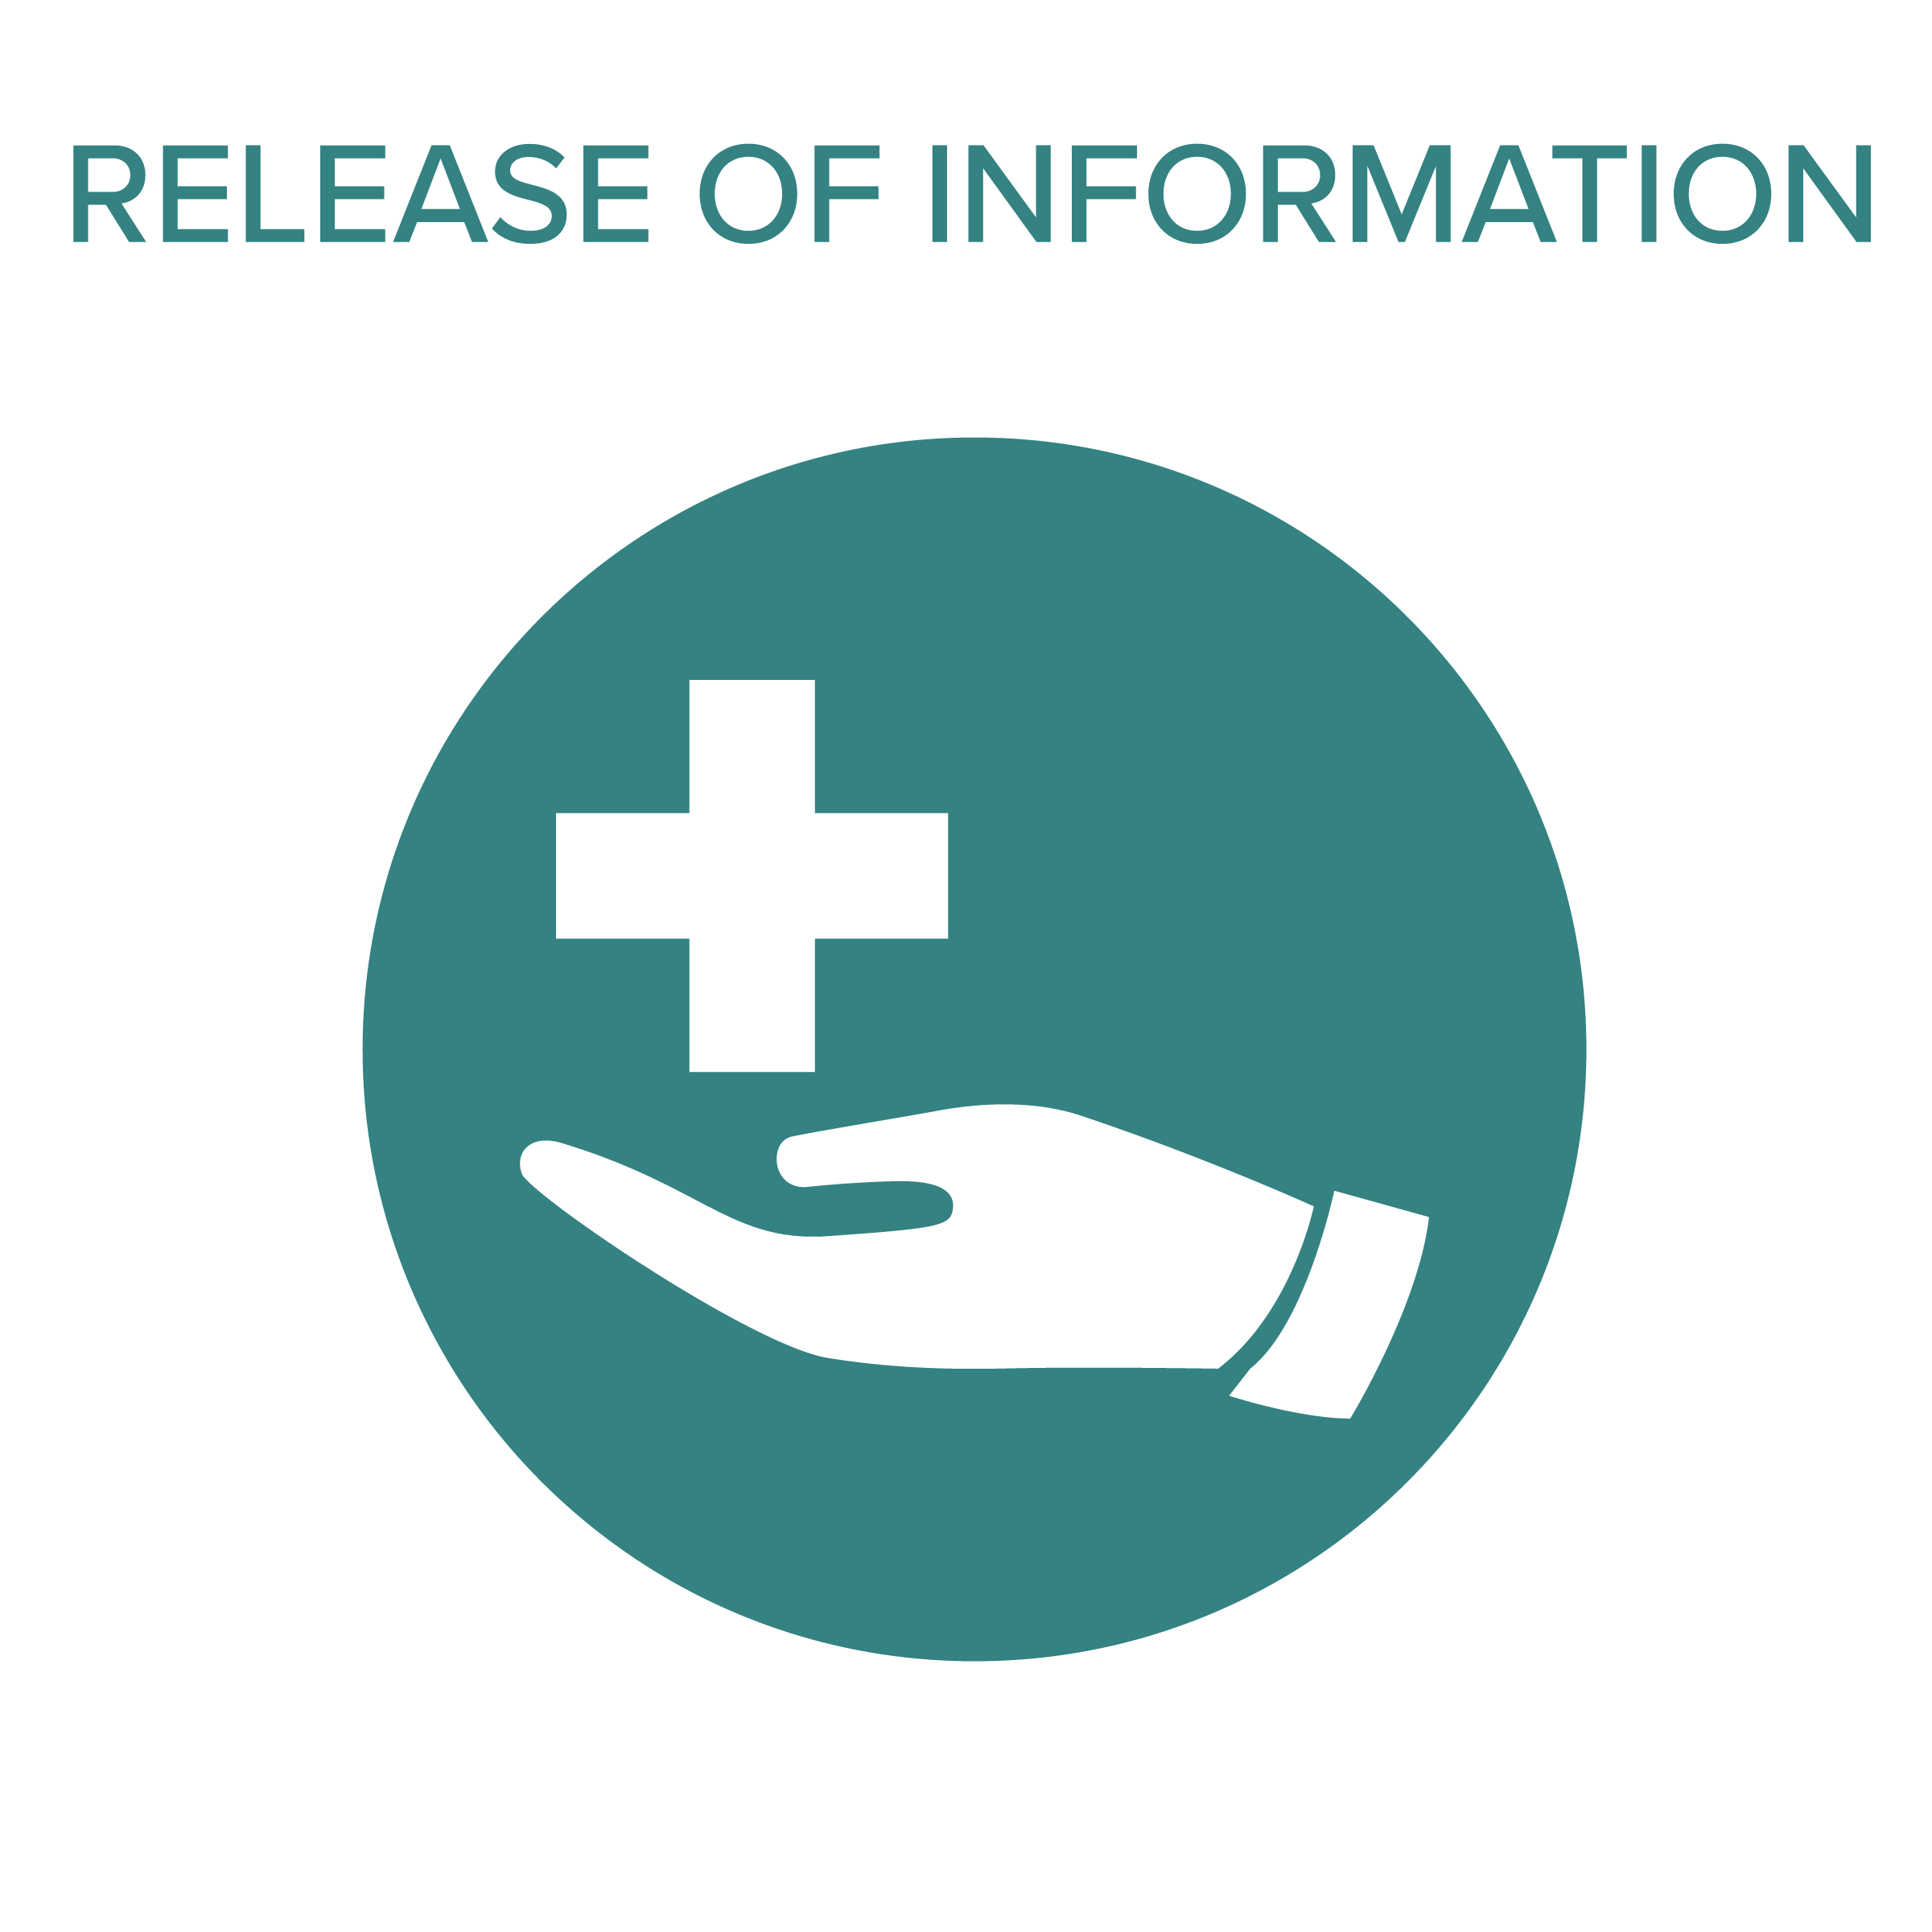 CBTC Release of Information 2.png